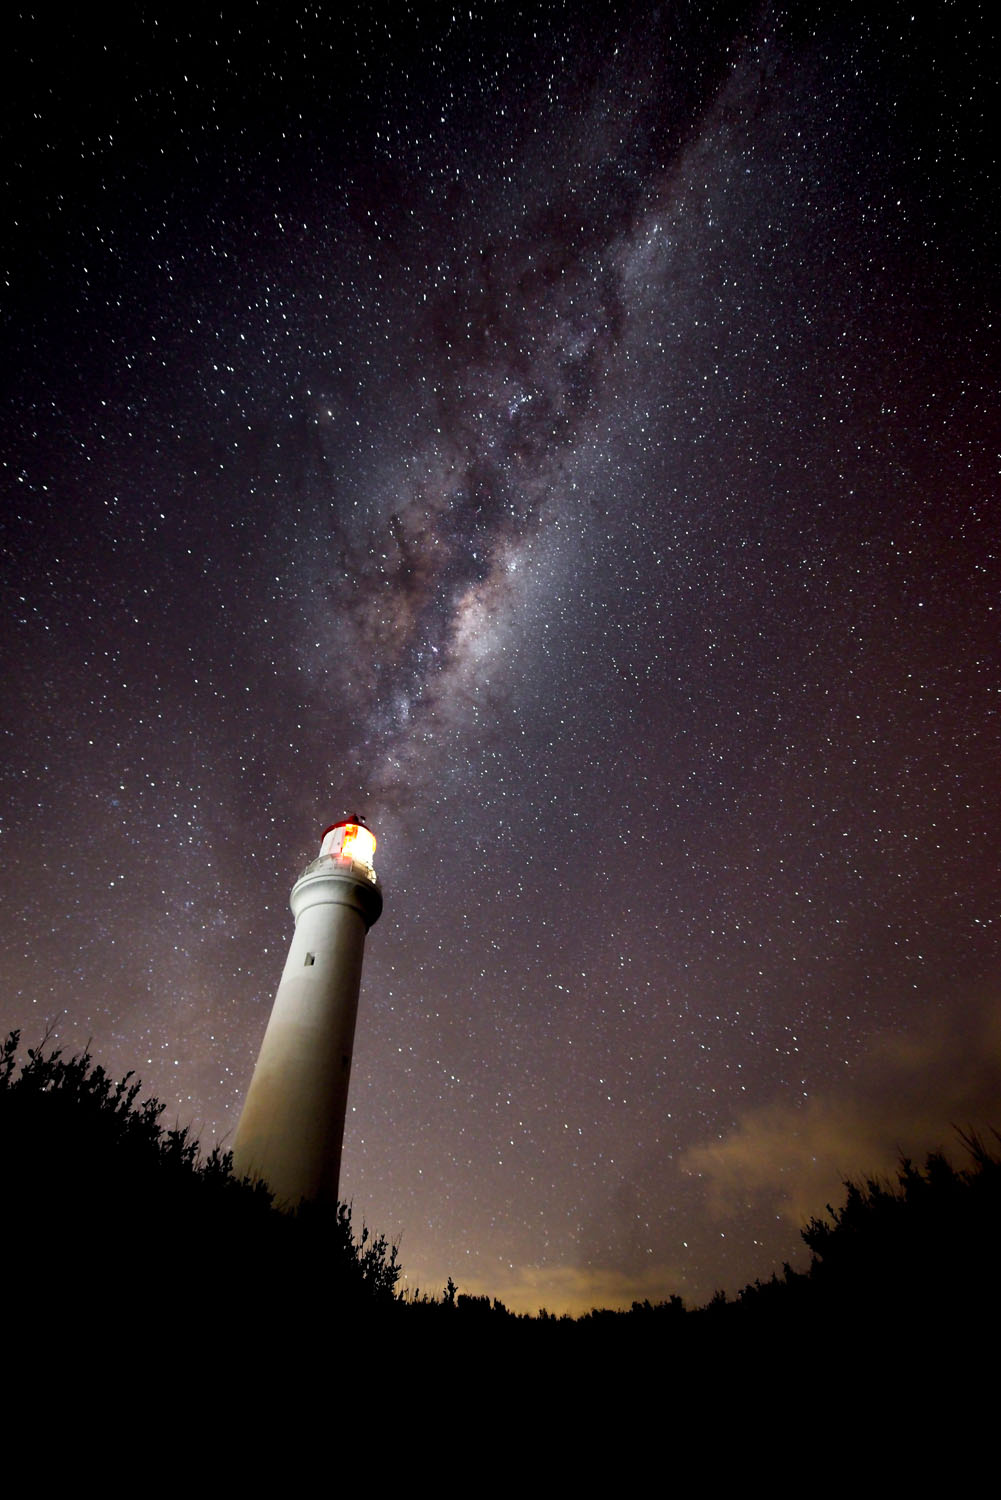 final image of lighthouse - Tips for Processing Night Photography with ON1 Photo RAW 2018